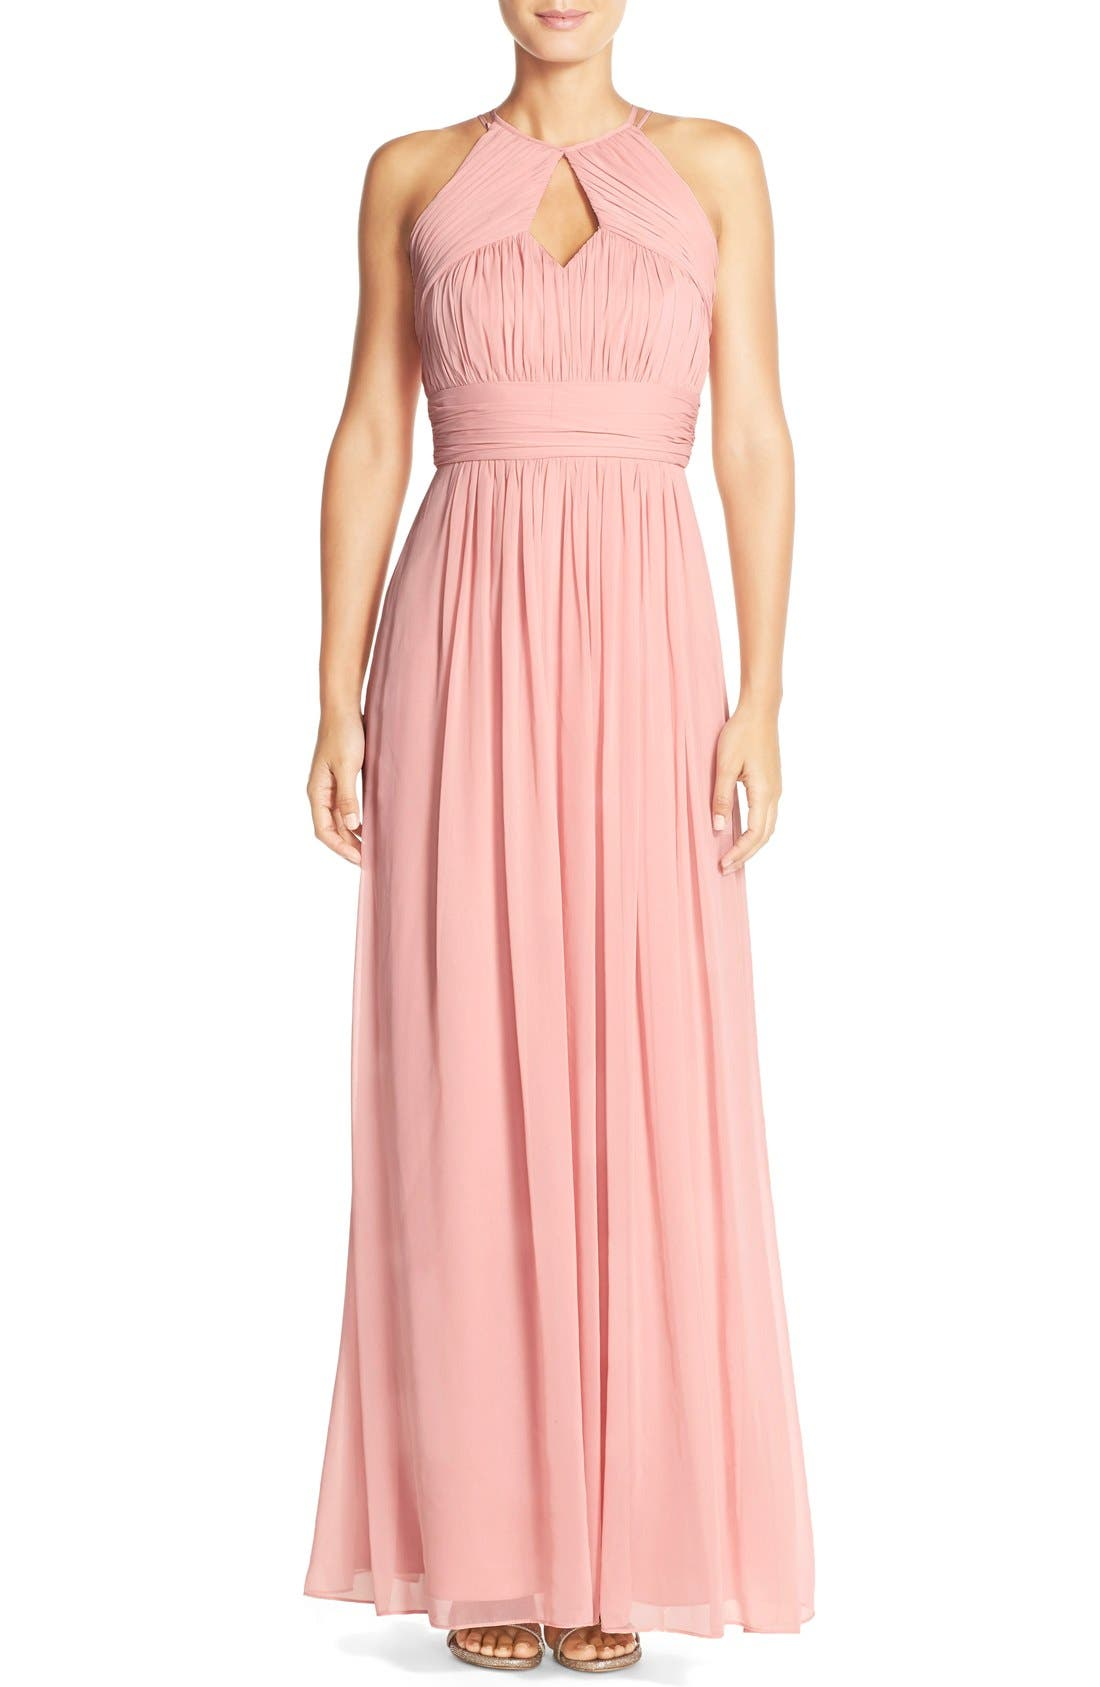 DESSY COLLECTION Dessy Collection Ruched Chiffon Keyhole Halter Gown